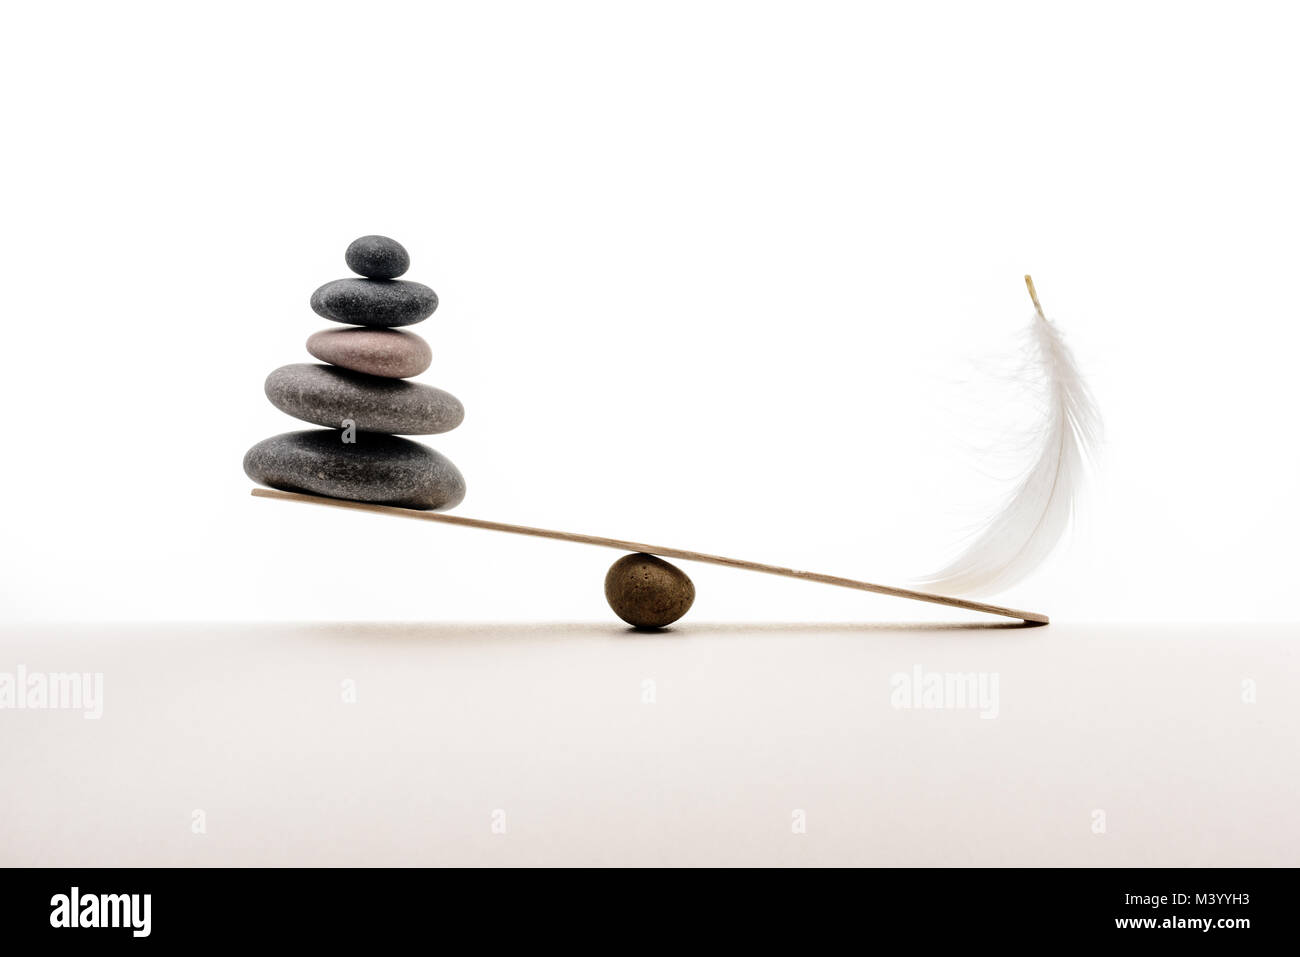 Stone balance with plume. Concept of heavy and light. - Stock Image